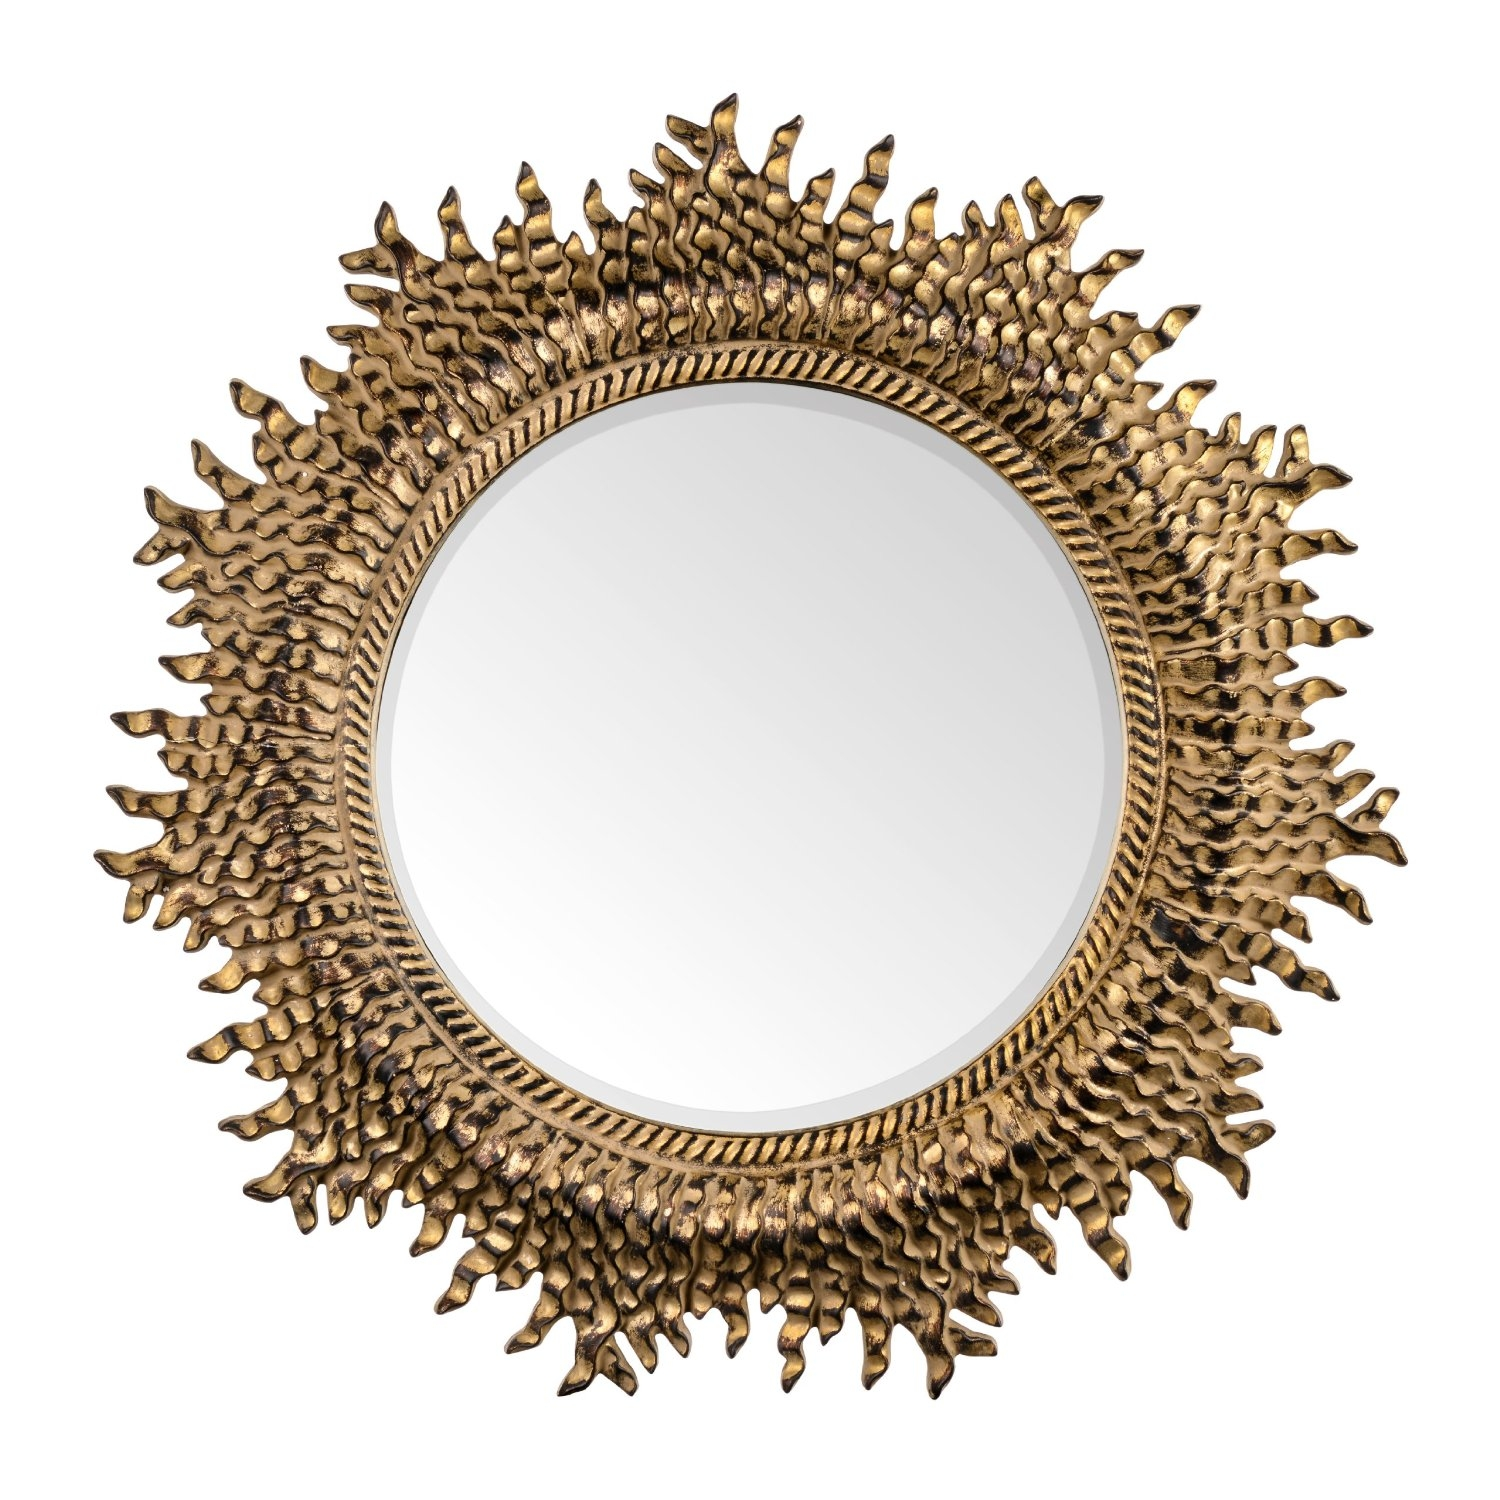 16 Ornate Mirrors For Your Home Qosy With Regard To Ornate Round Mirror (Image 1 of 15)